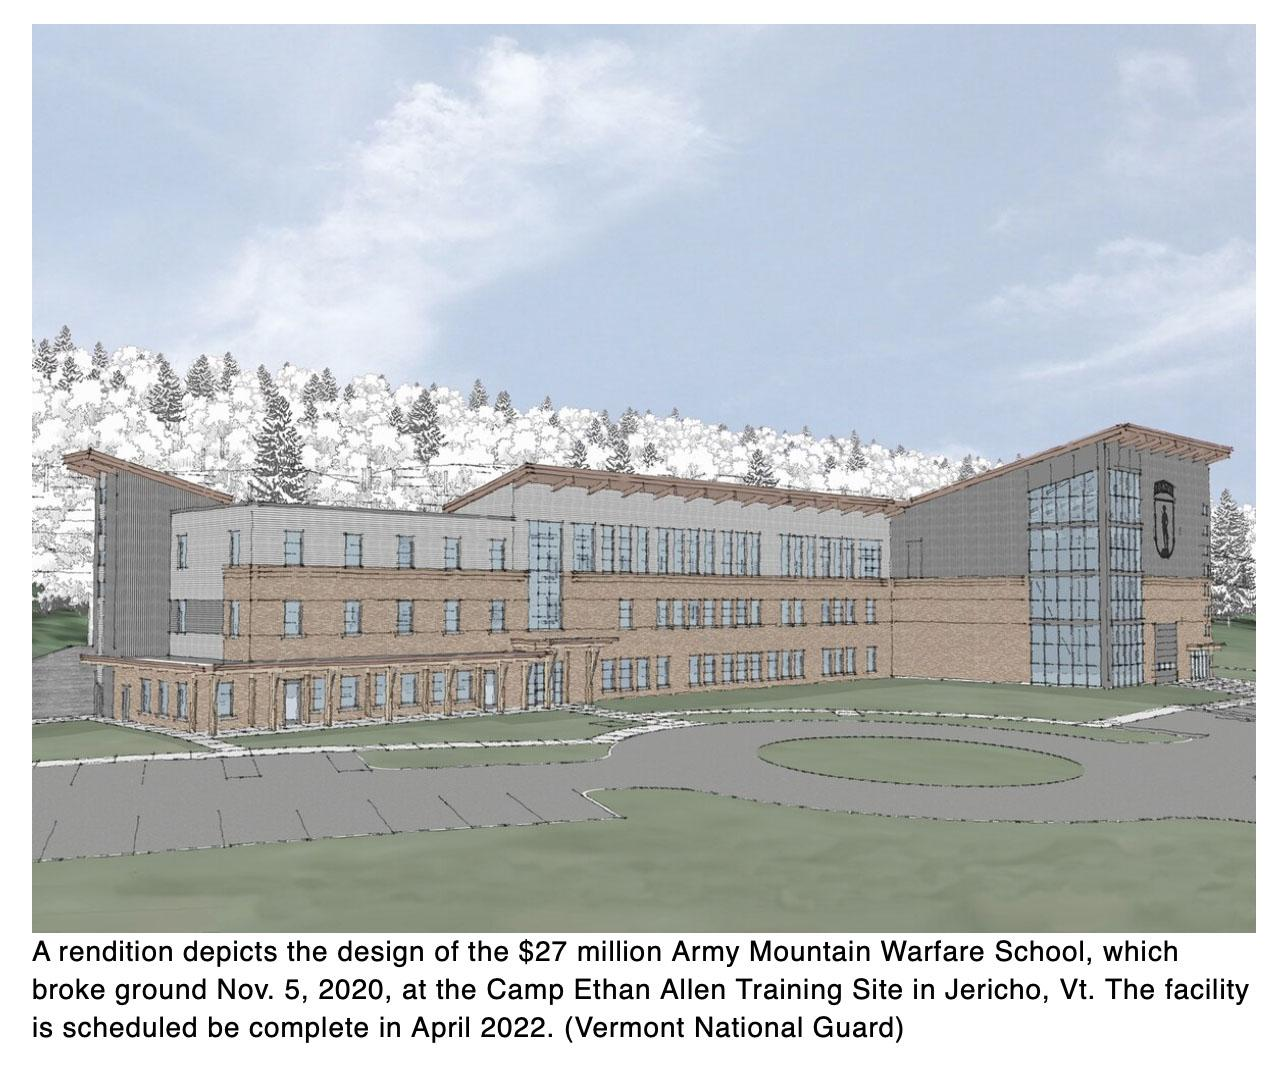 Vermont National Guard breaks ground on new mountain warfare school facility